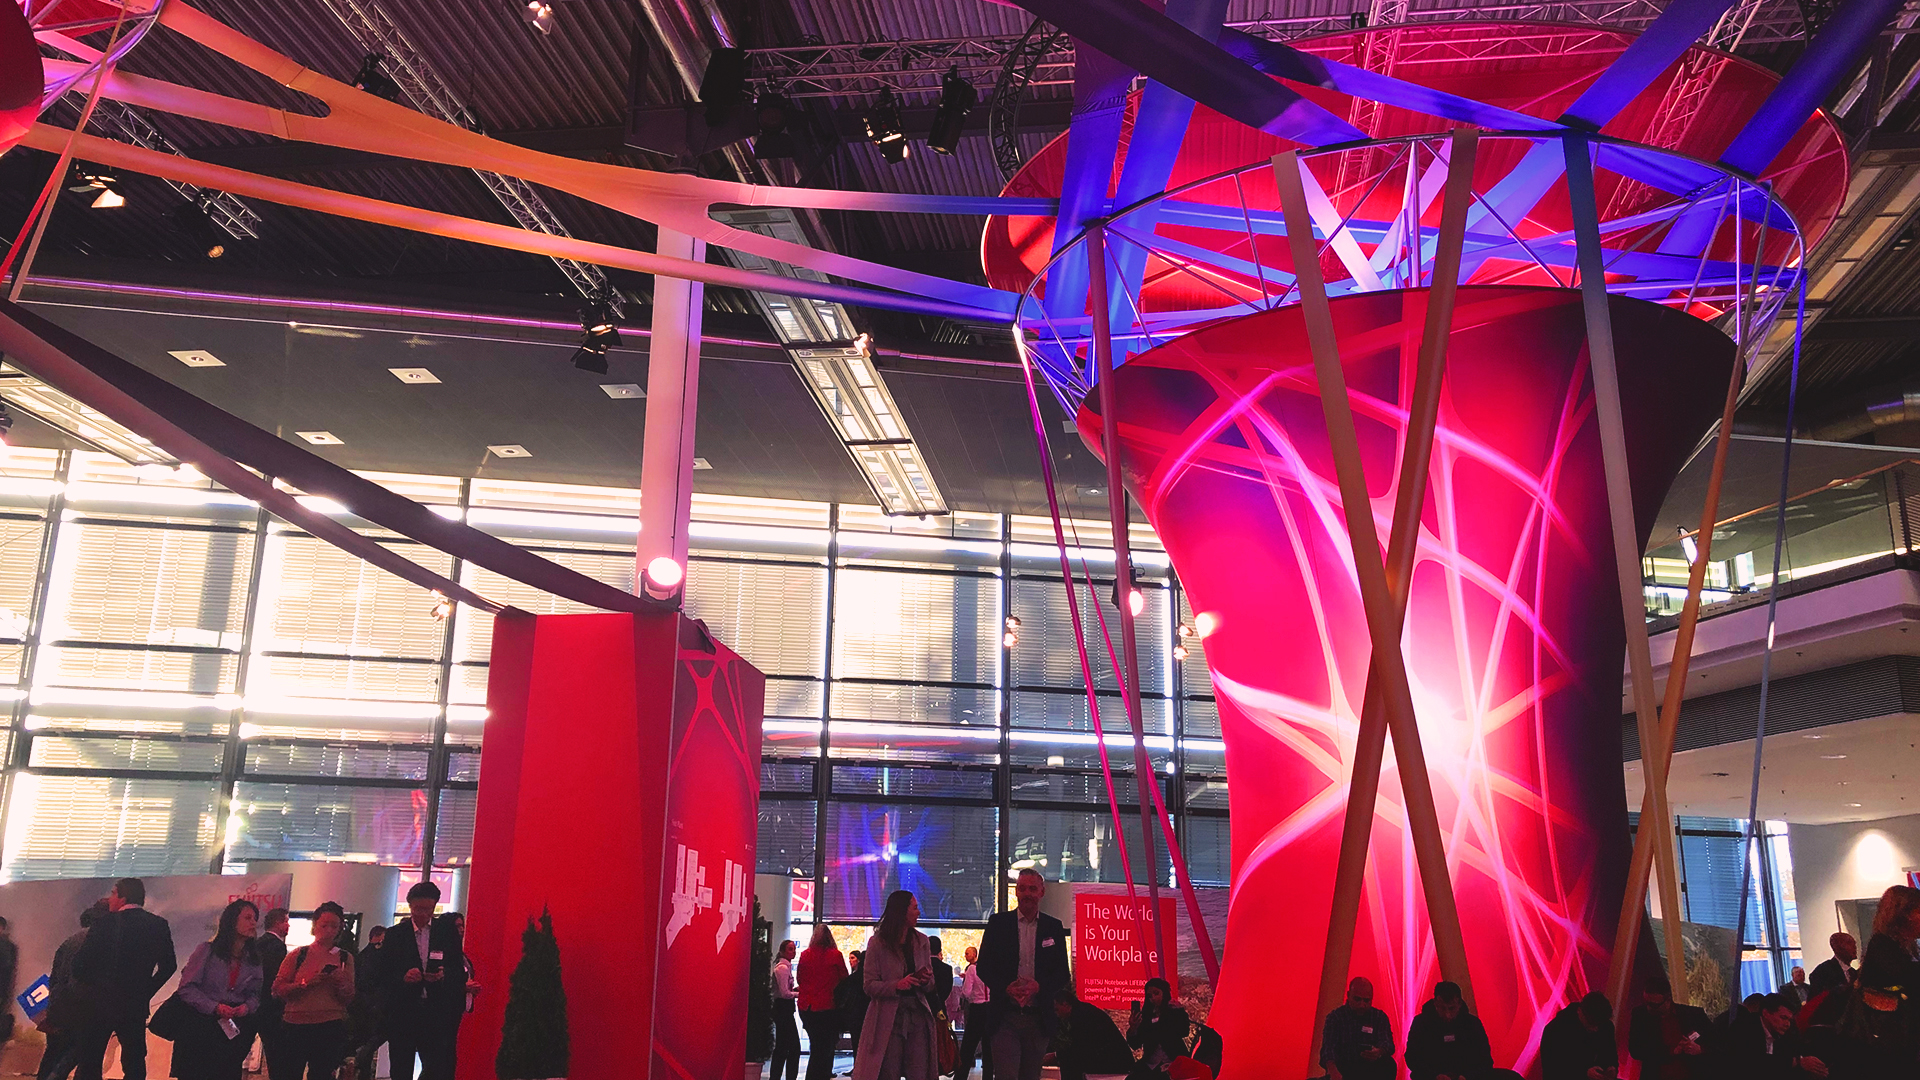 Fujitsu Forum 2018: A Tale of Two Sides